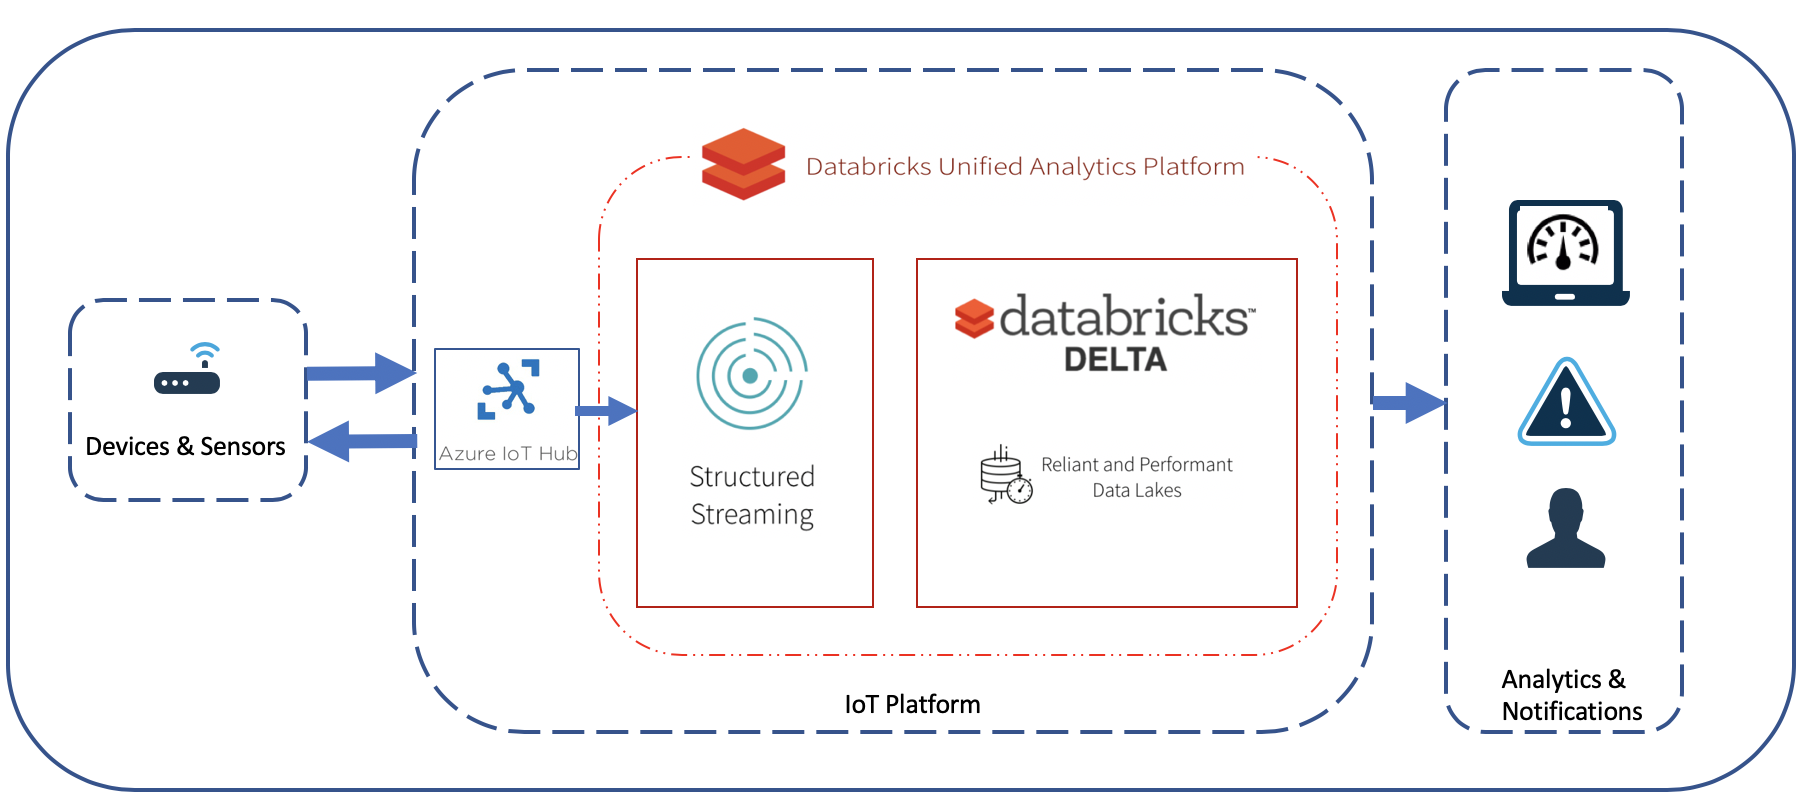 Stream IoT sensor data from Azure IoT Hub into Databricks